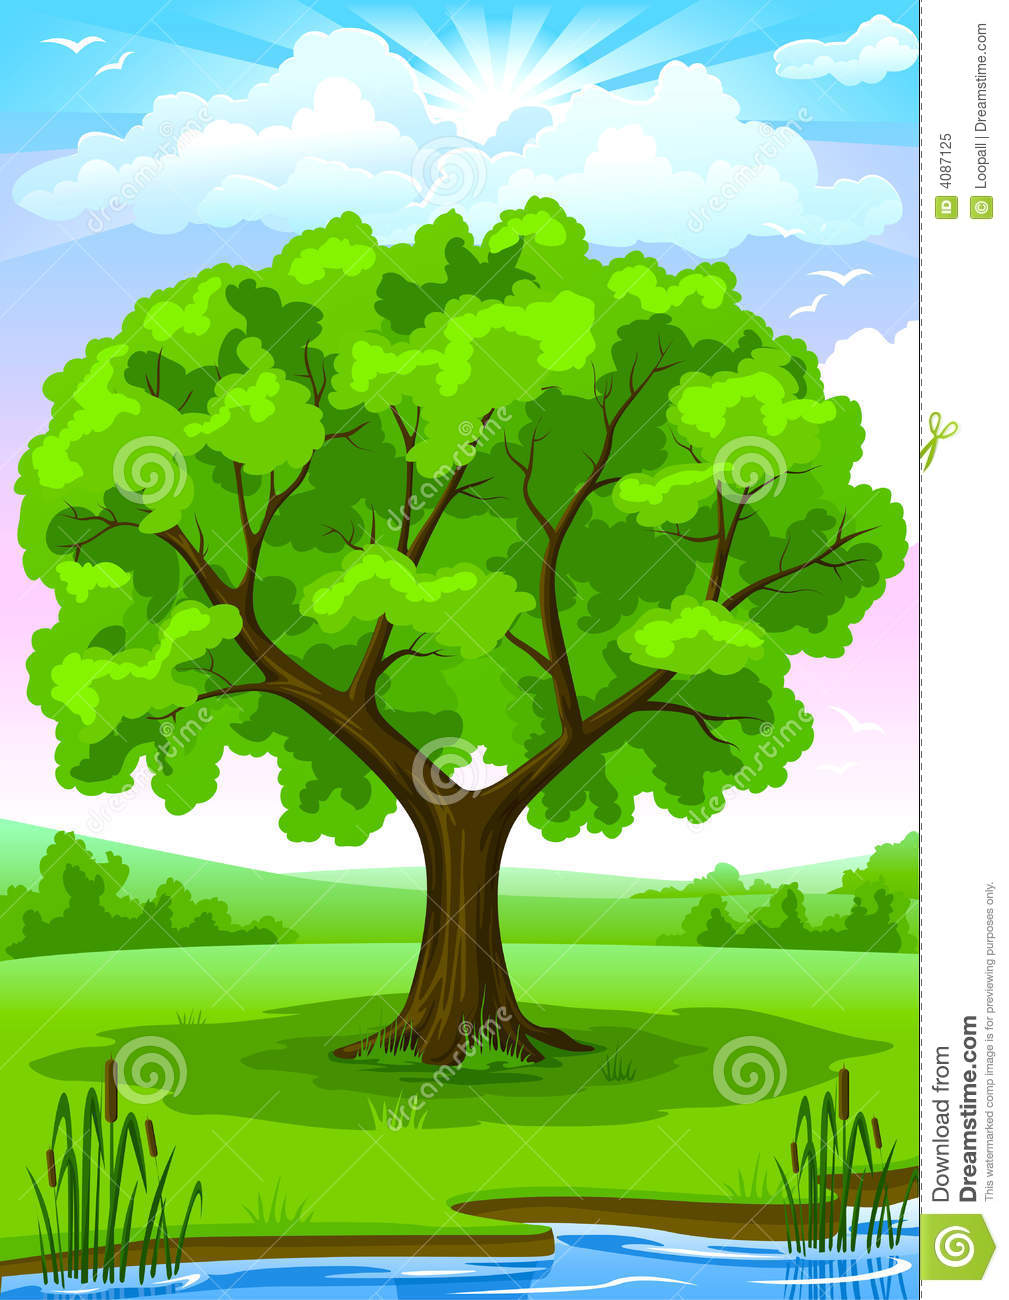 Summer landscape with old tree